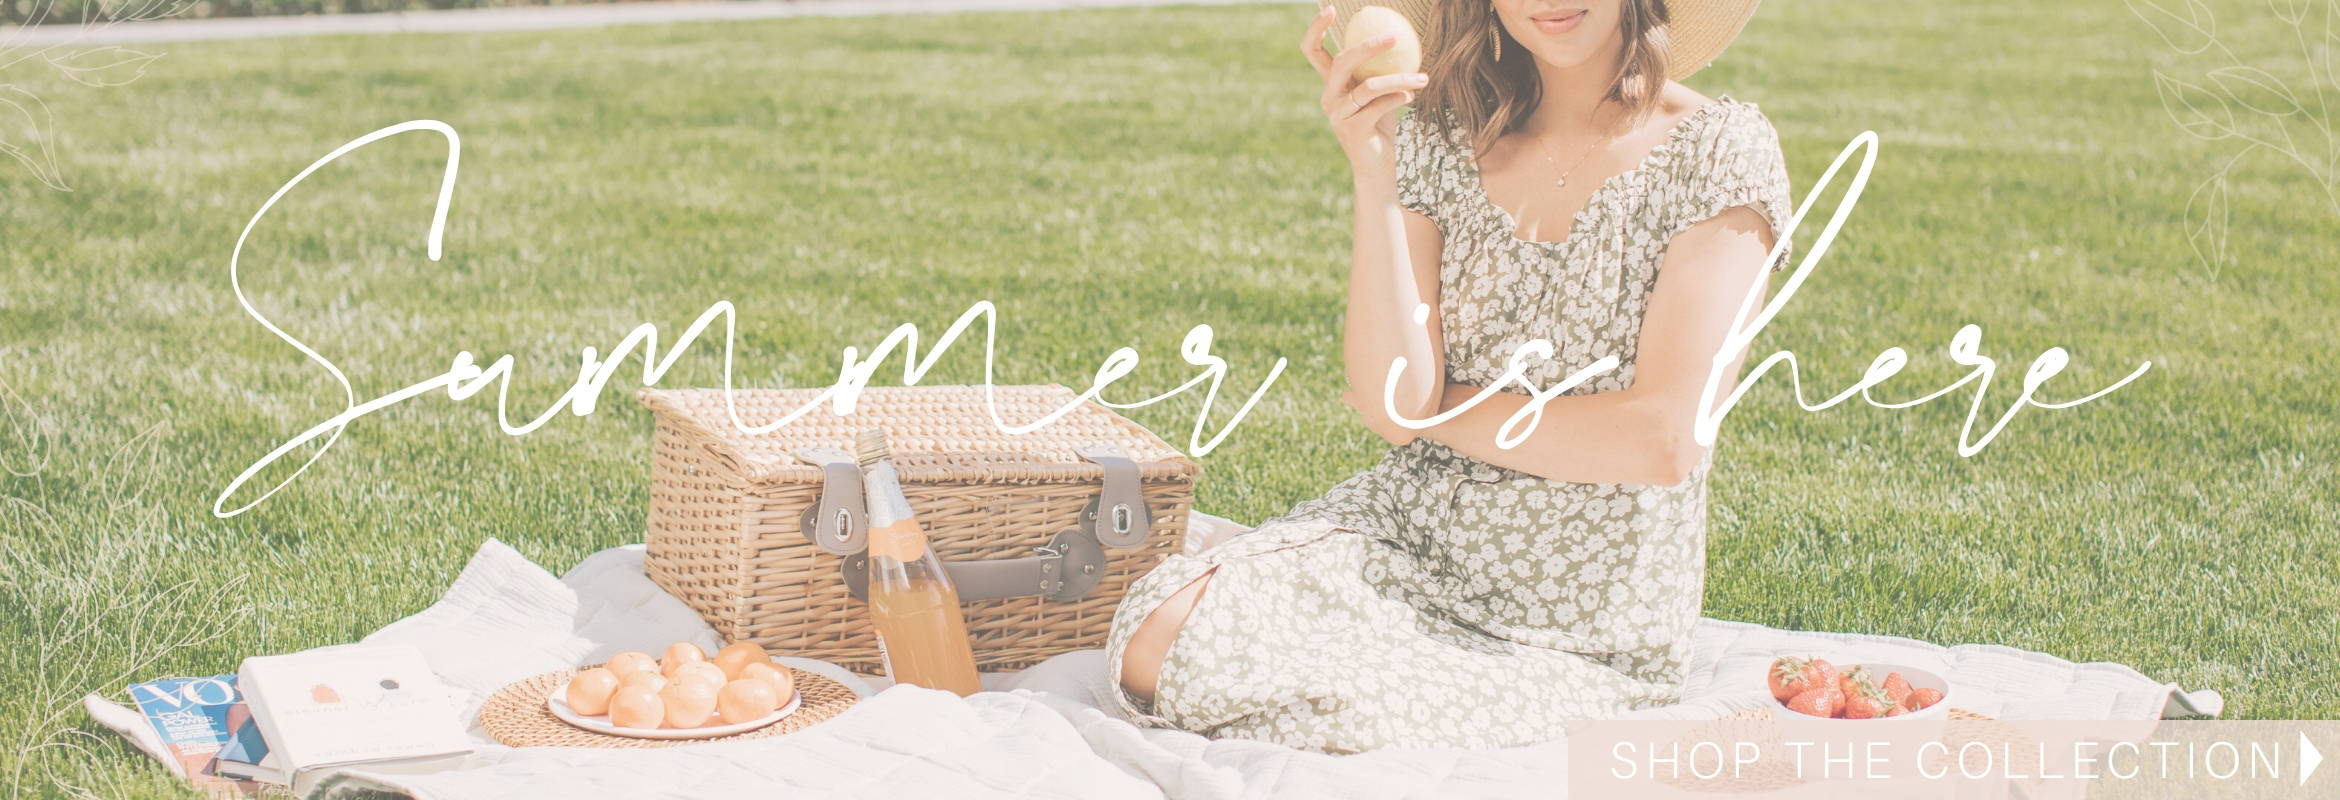 Online Boutique Summer collection banner